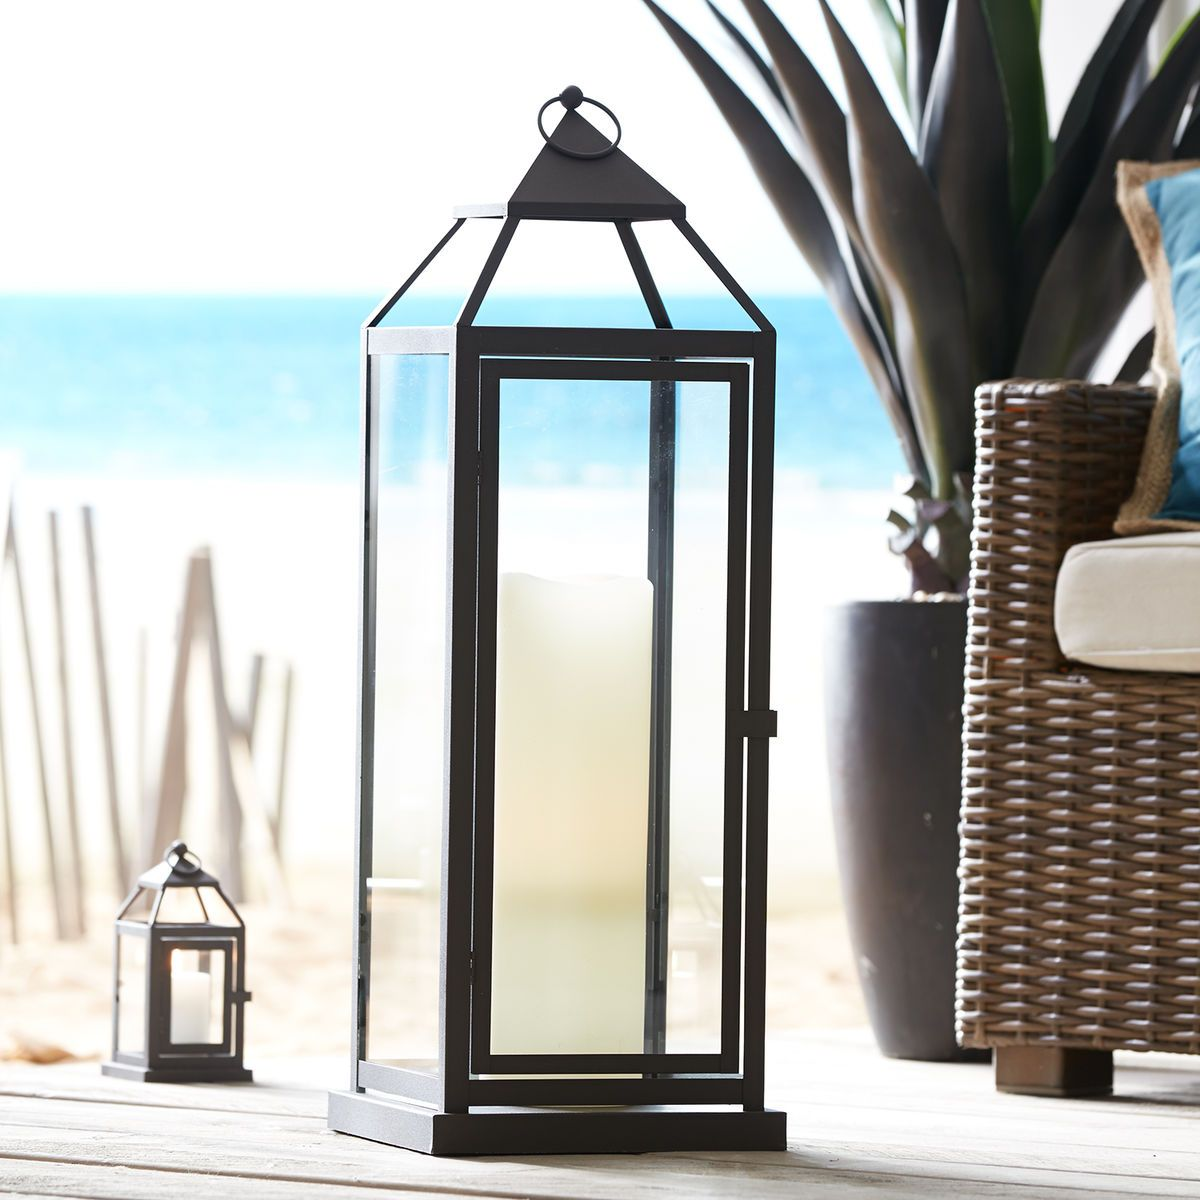 Landen Lantern Black Extra Large Large Outdoor Lanterns Large Floor Lanterns Glass Lantern